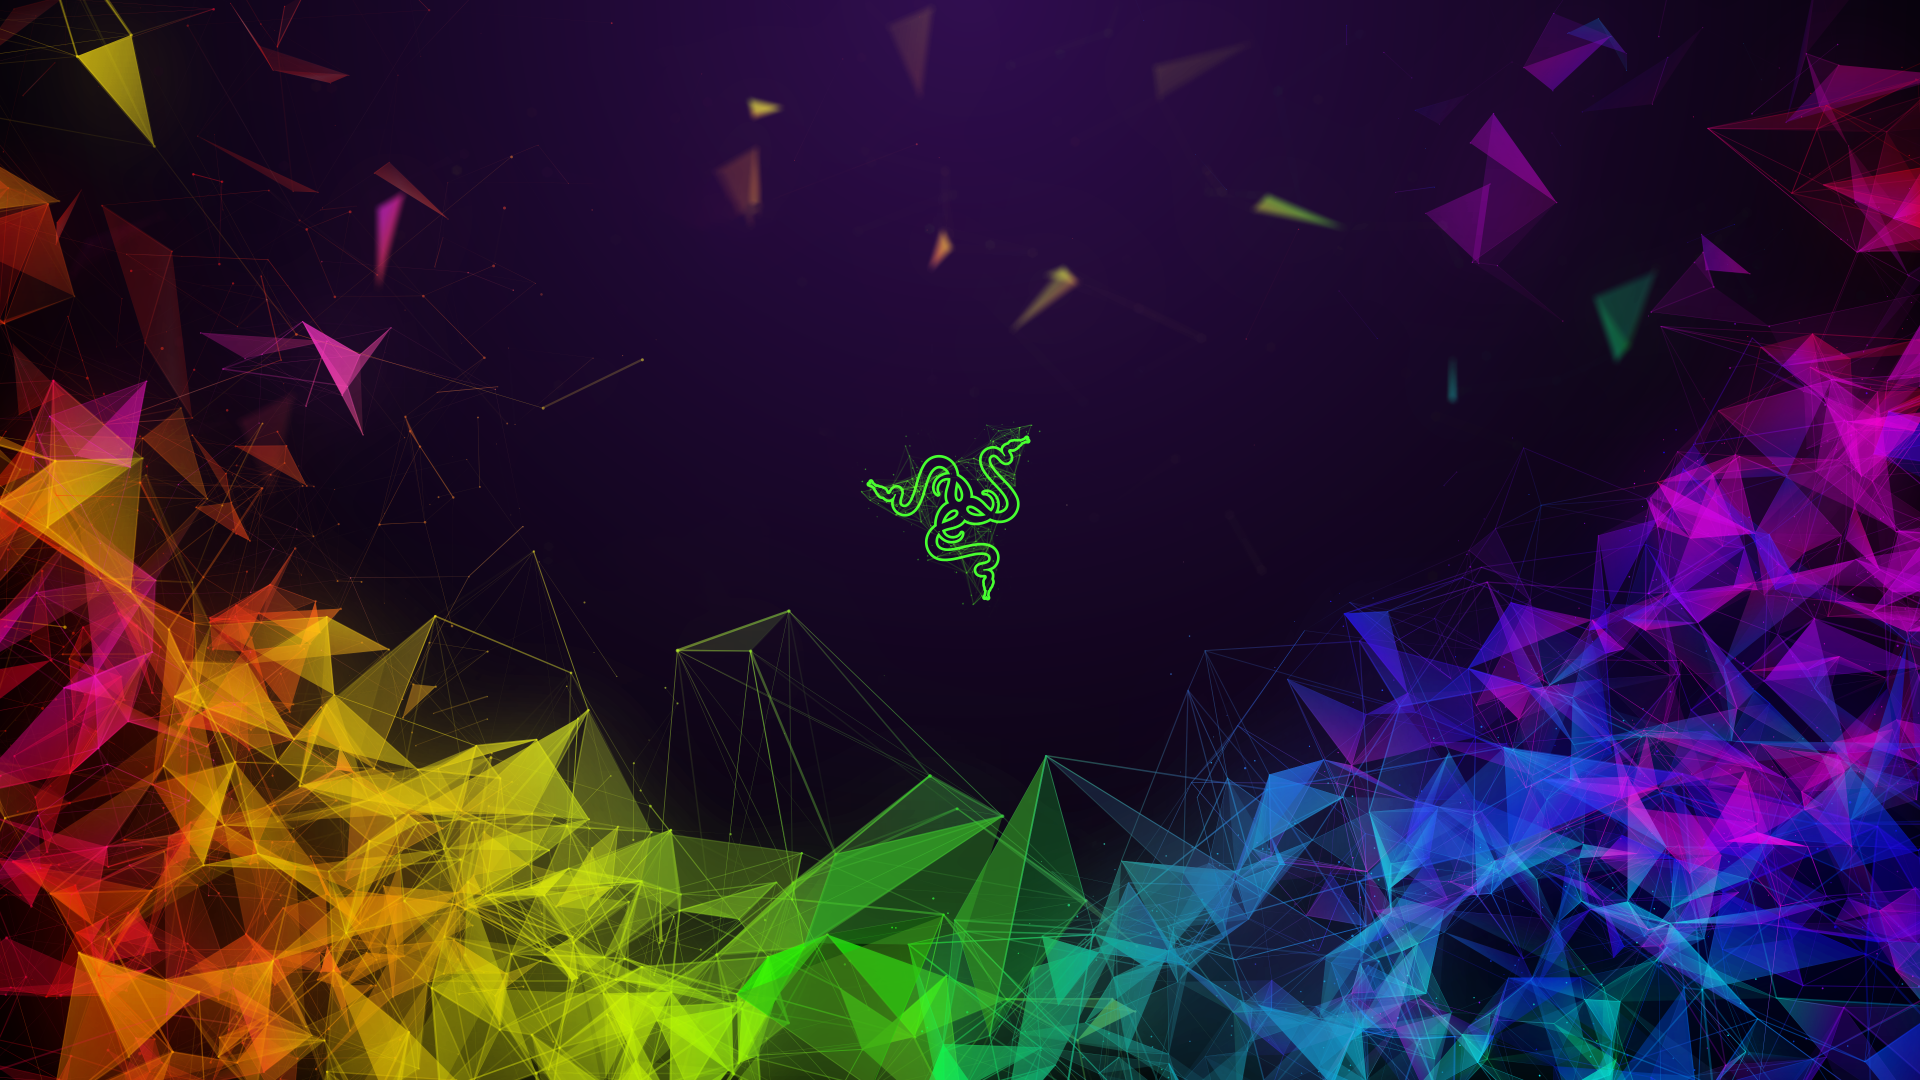 Razer Pc Wallpapers Top Free Razer Pc Backgrounds Wallpaperaccess